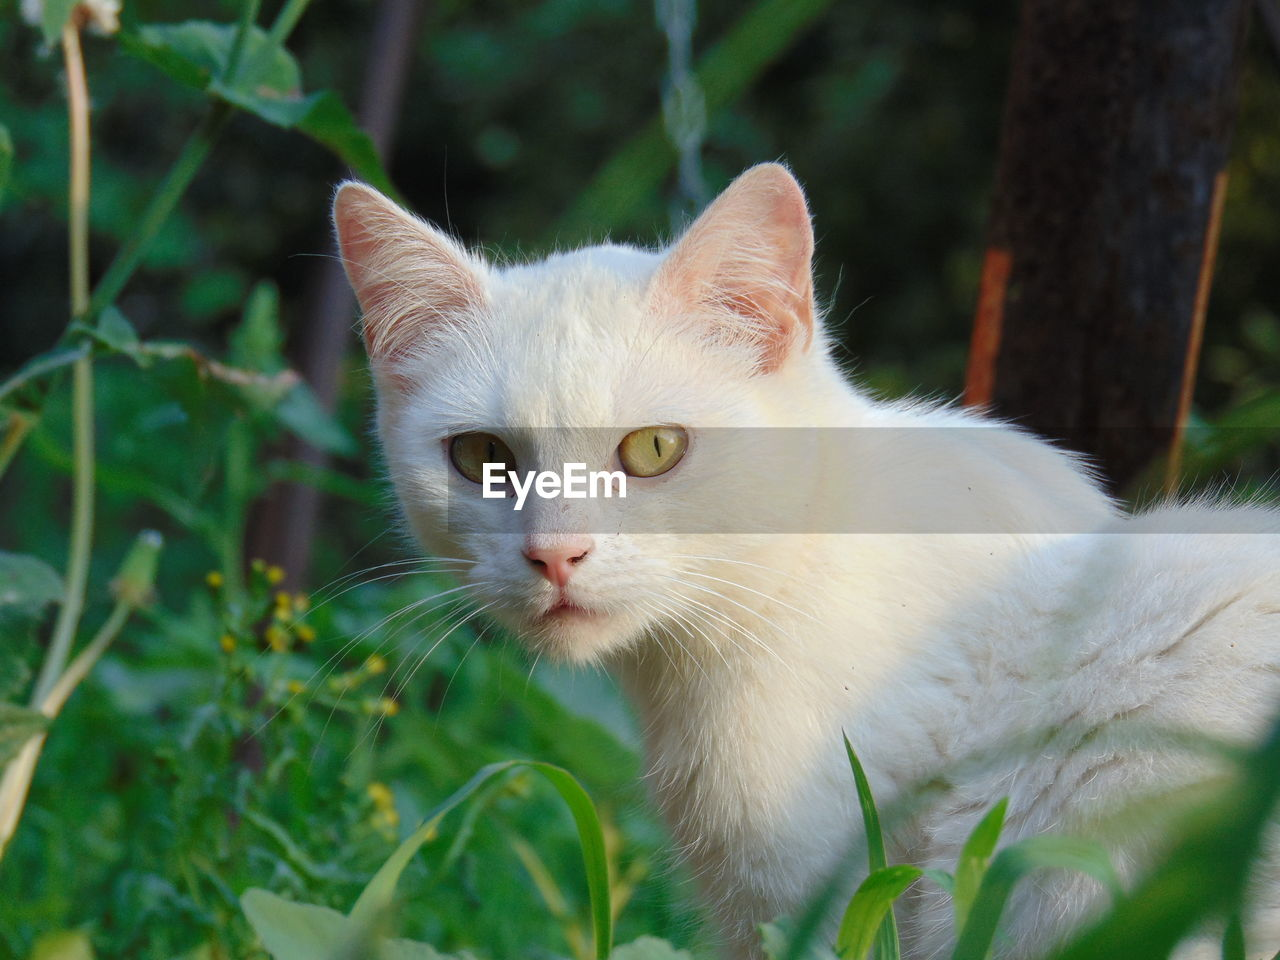 pets, cat, domestic cat, domestic, domestic animals, animal themes, animal, feline, mammal, one animal, vertebrate, plant, close-up, whisker, white color, nature, focus on foreground, day, no people, portrait, outdoors, animal head